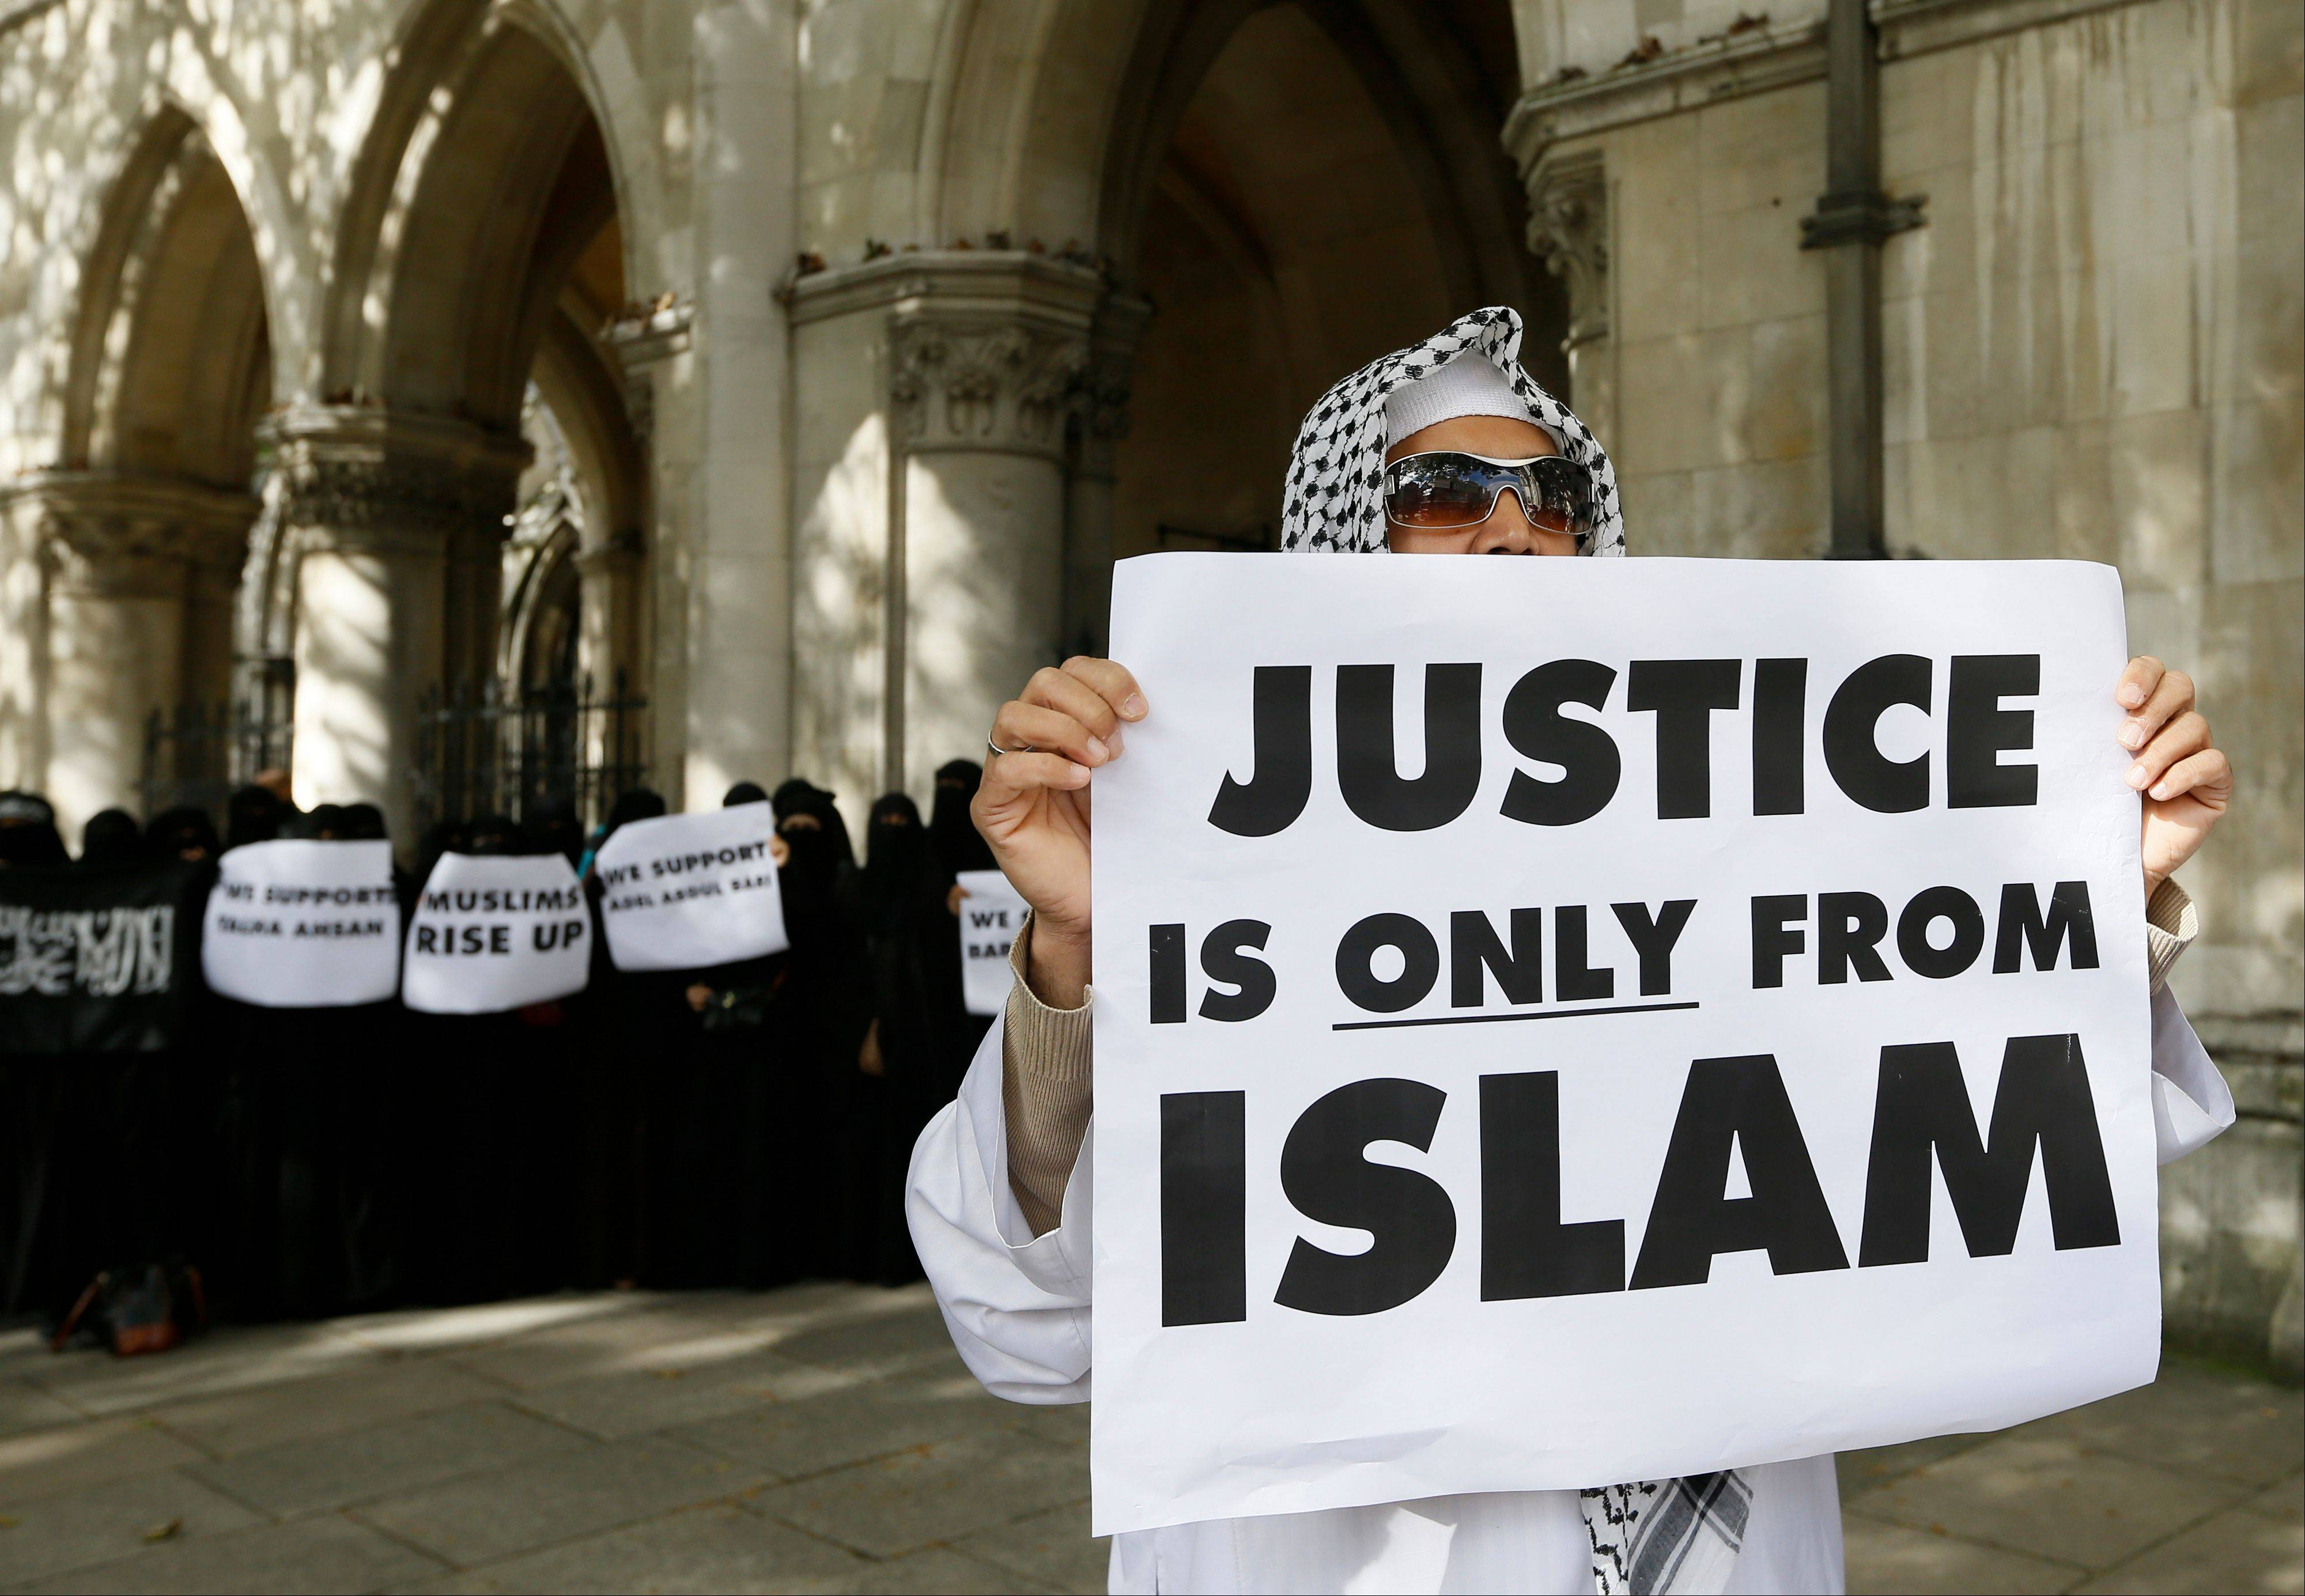 Demonstrators gather outside The Royal Courts of Justice in London Friday, Oct. 5, 2012. A British court ruled Friday that al-Masri and four other terror suspects can be extradited immediately to the U.S. to face charges there.